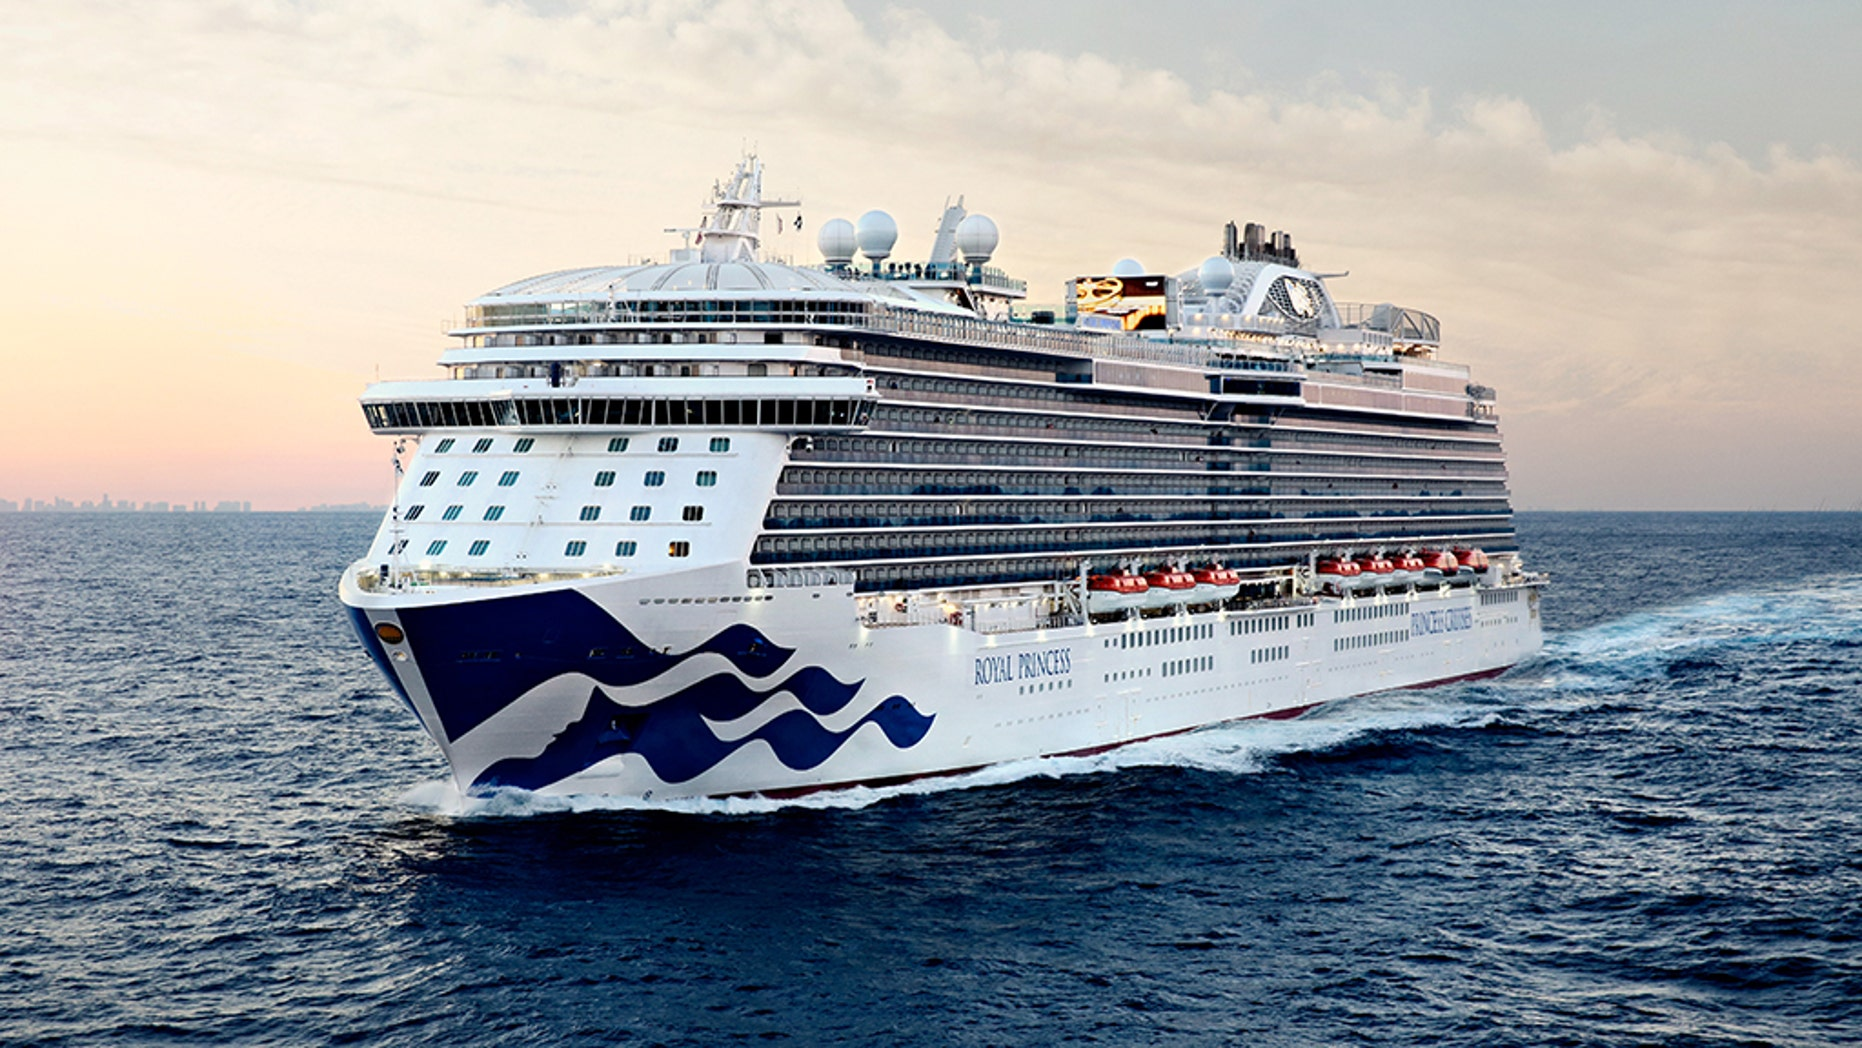 Authorities probing American woman's death on Princess Cruises voyage